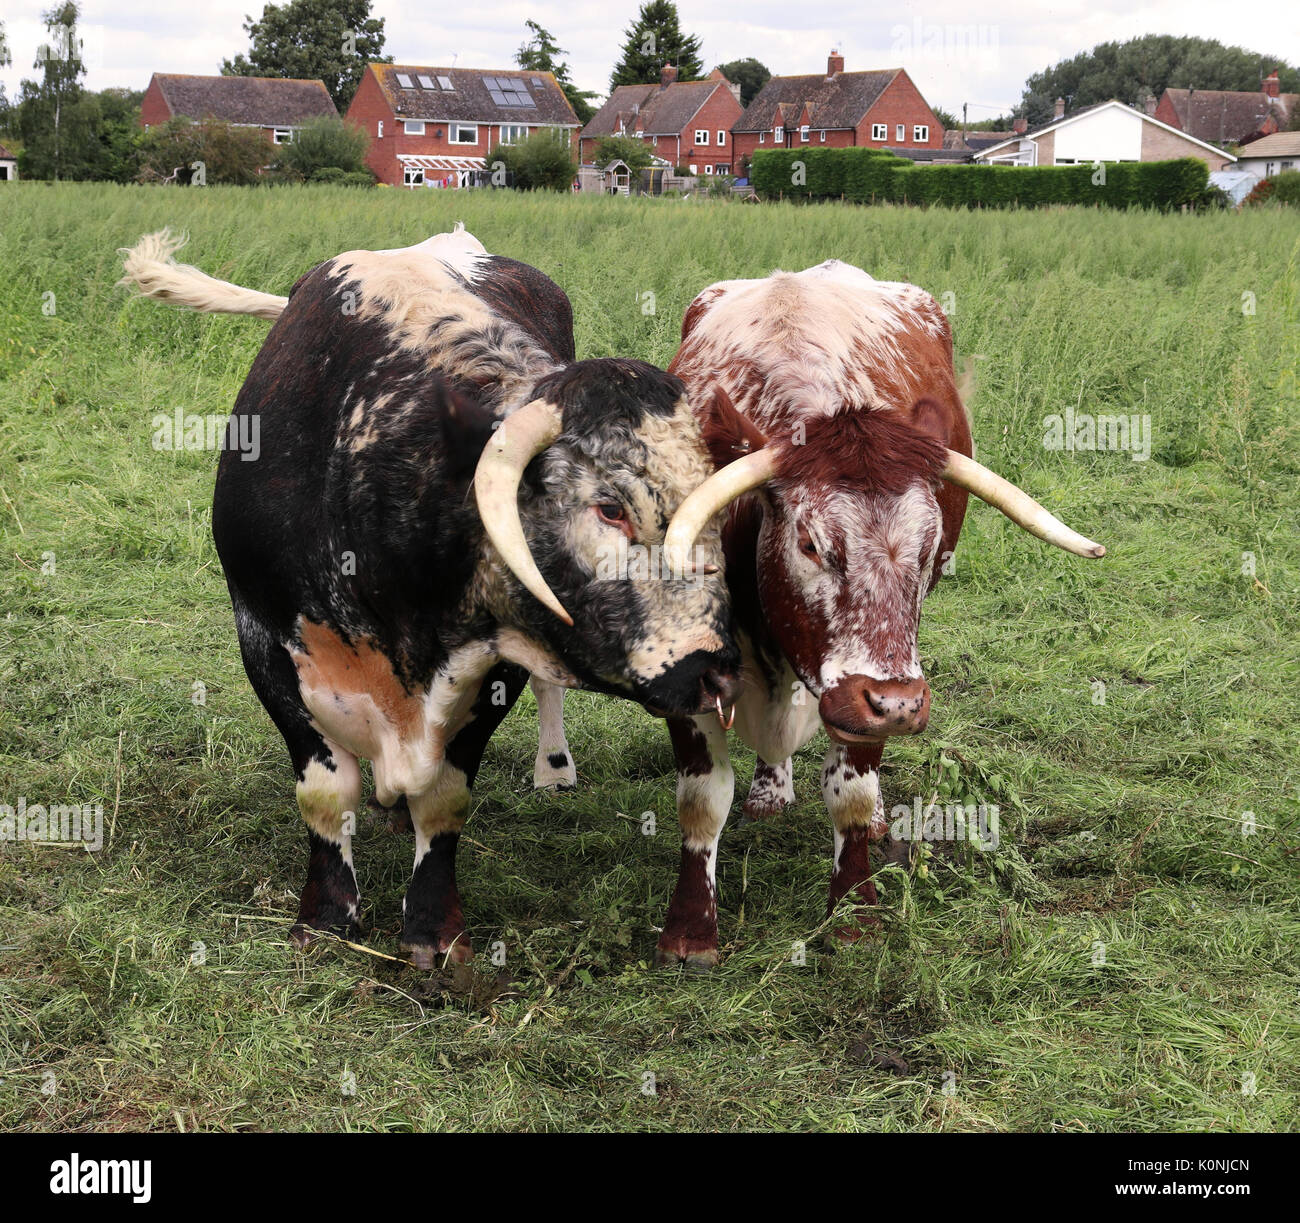 English Longhorn Bull and Cow in an English meadow - Stock Image